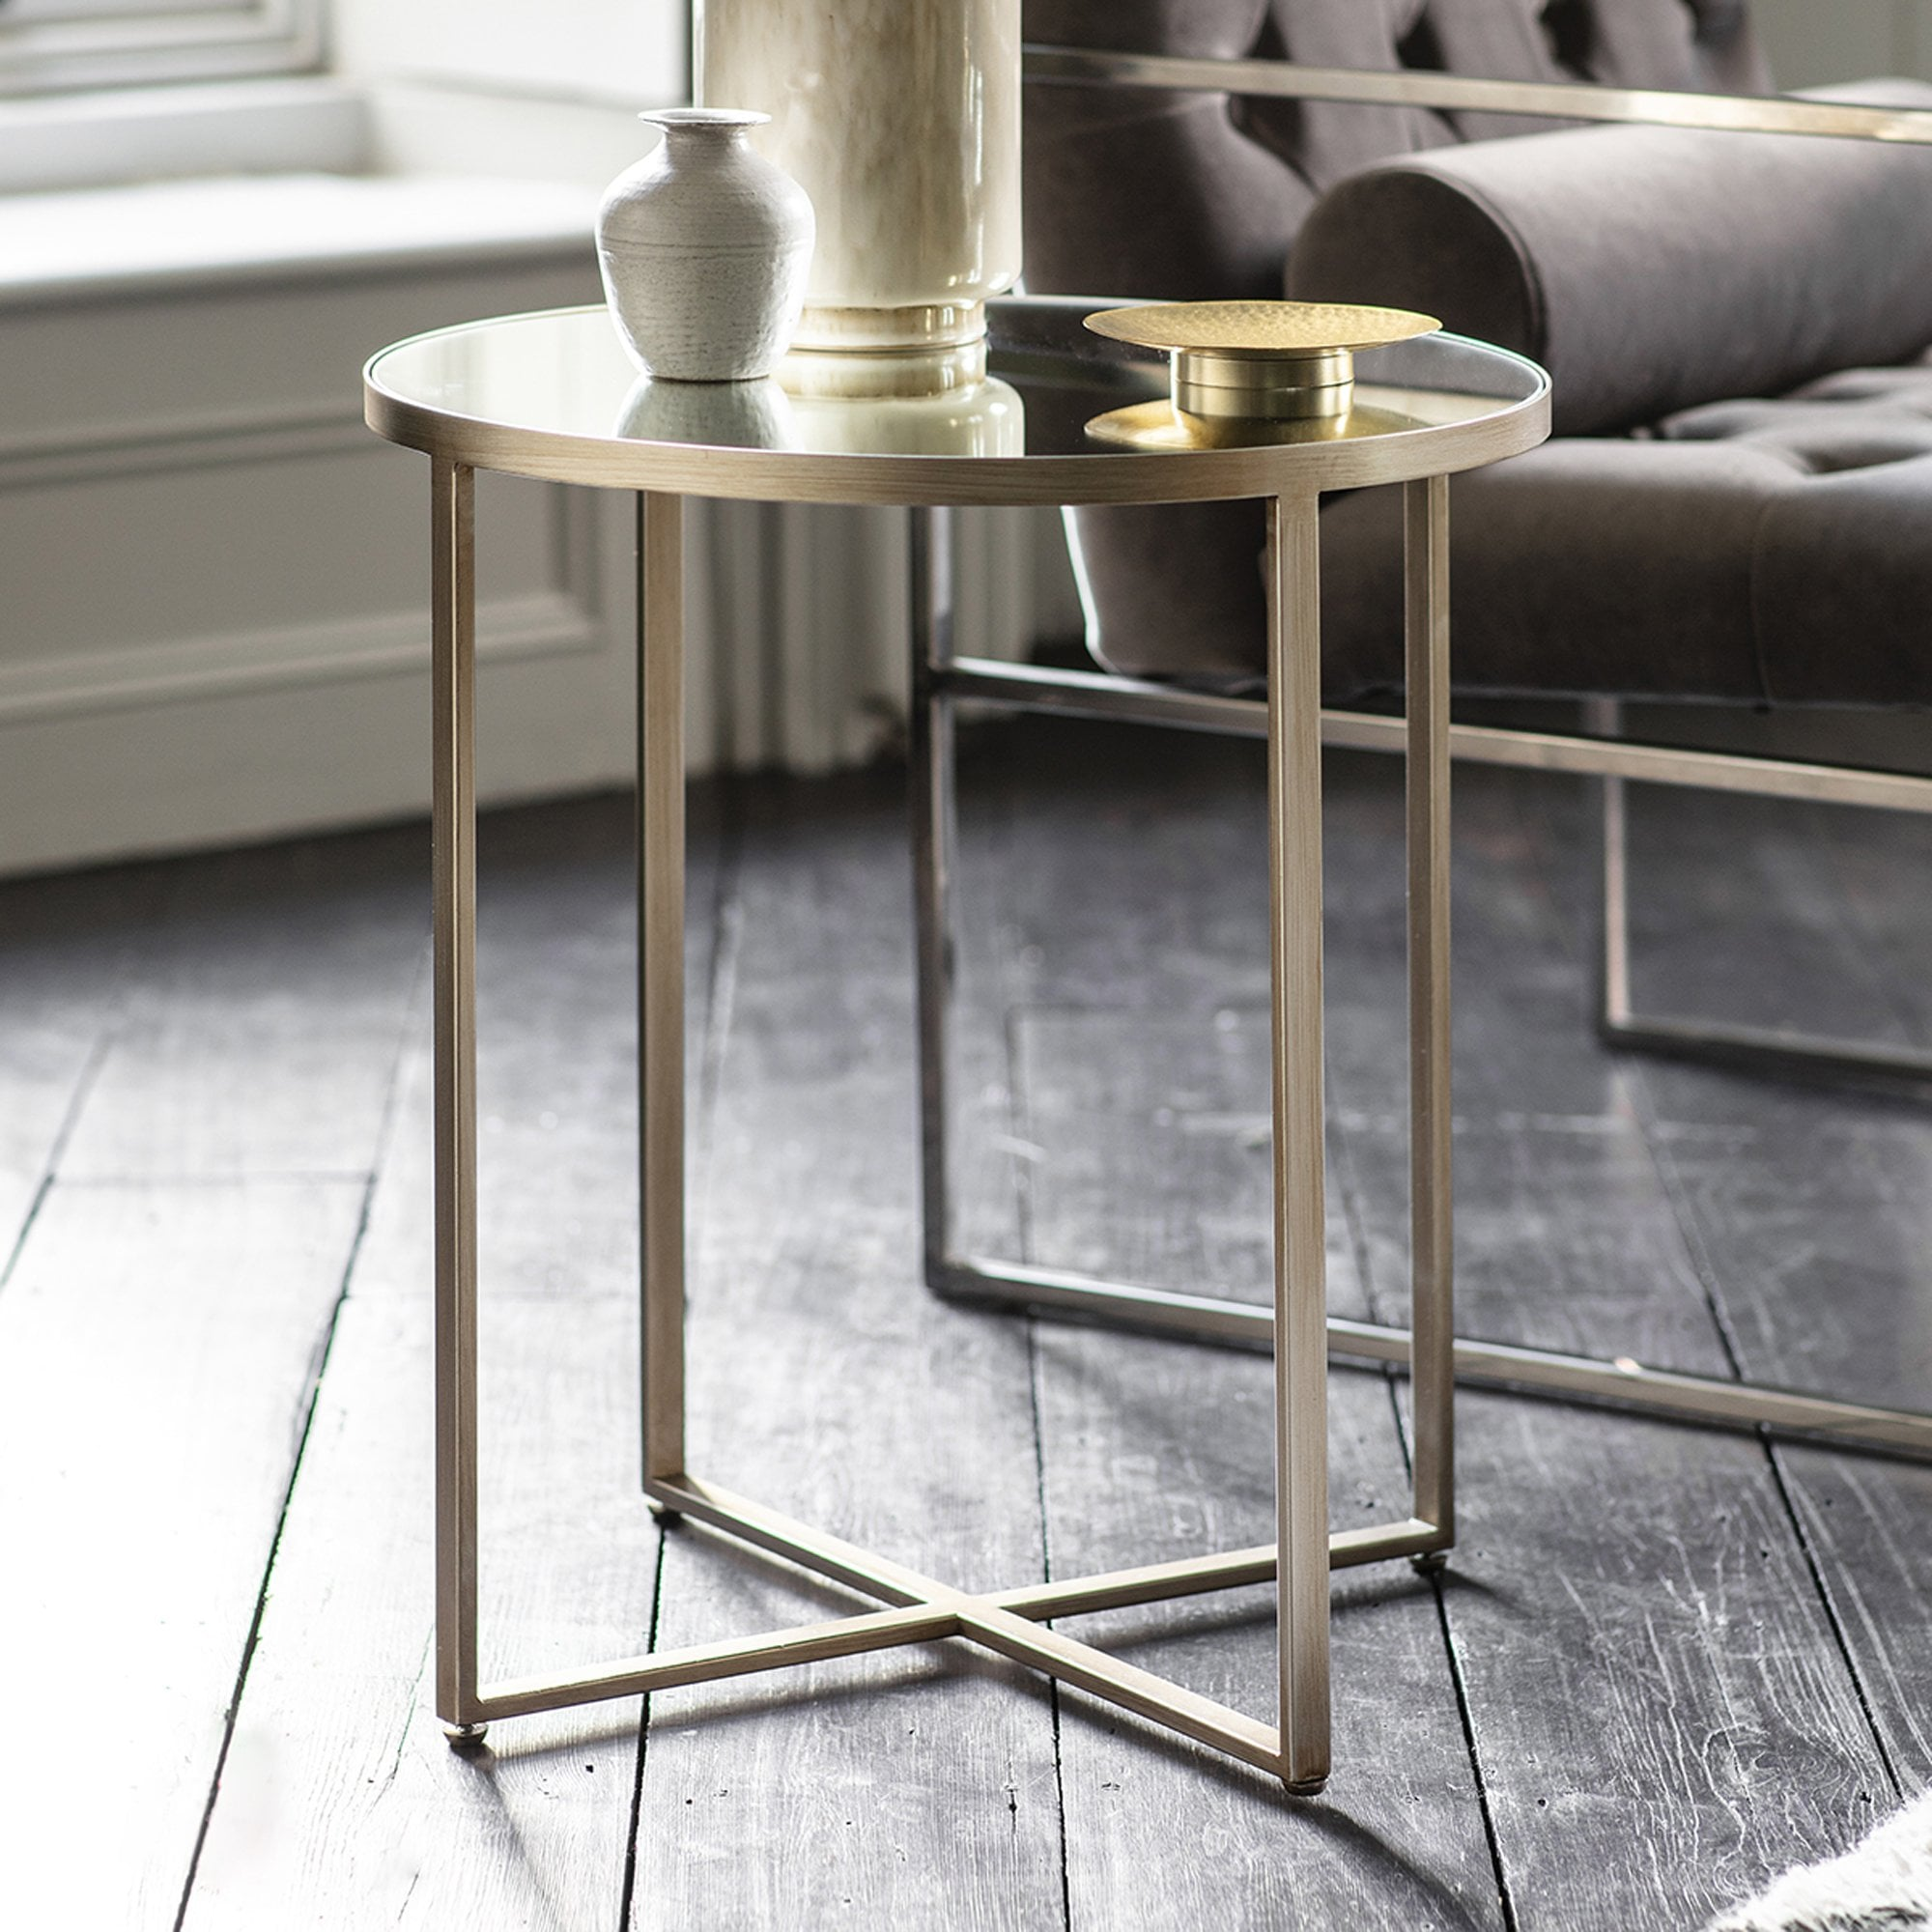 Gallery Direct Torrance Side Table Smoked Grey Matt Silver Leader Furniture [ 2000 x 2000 Pixel ]